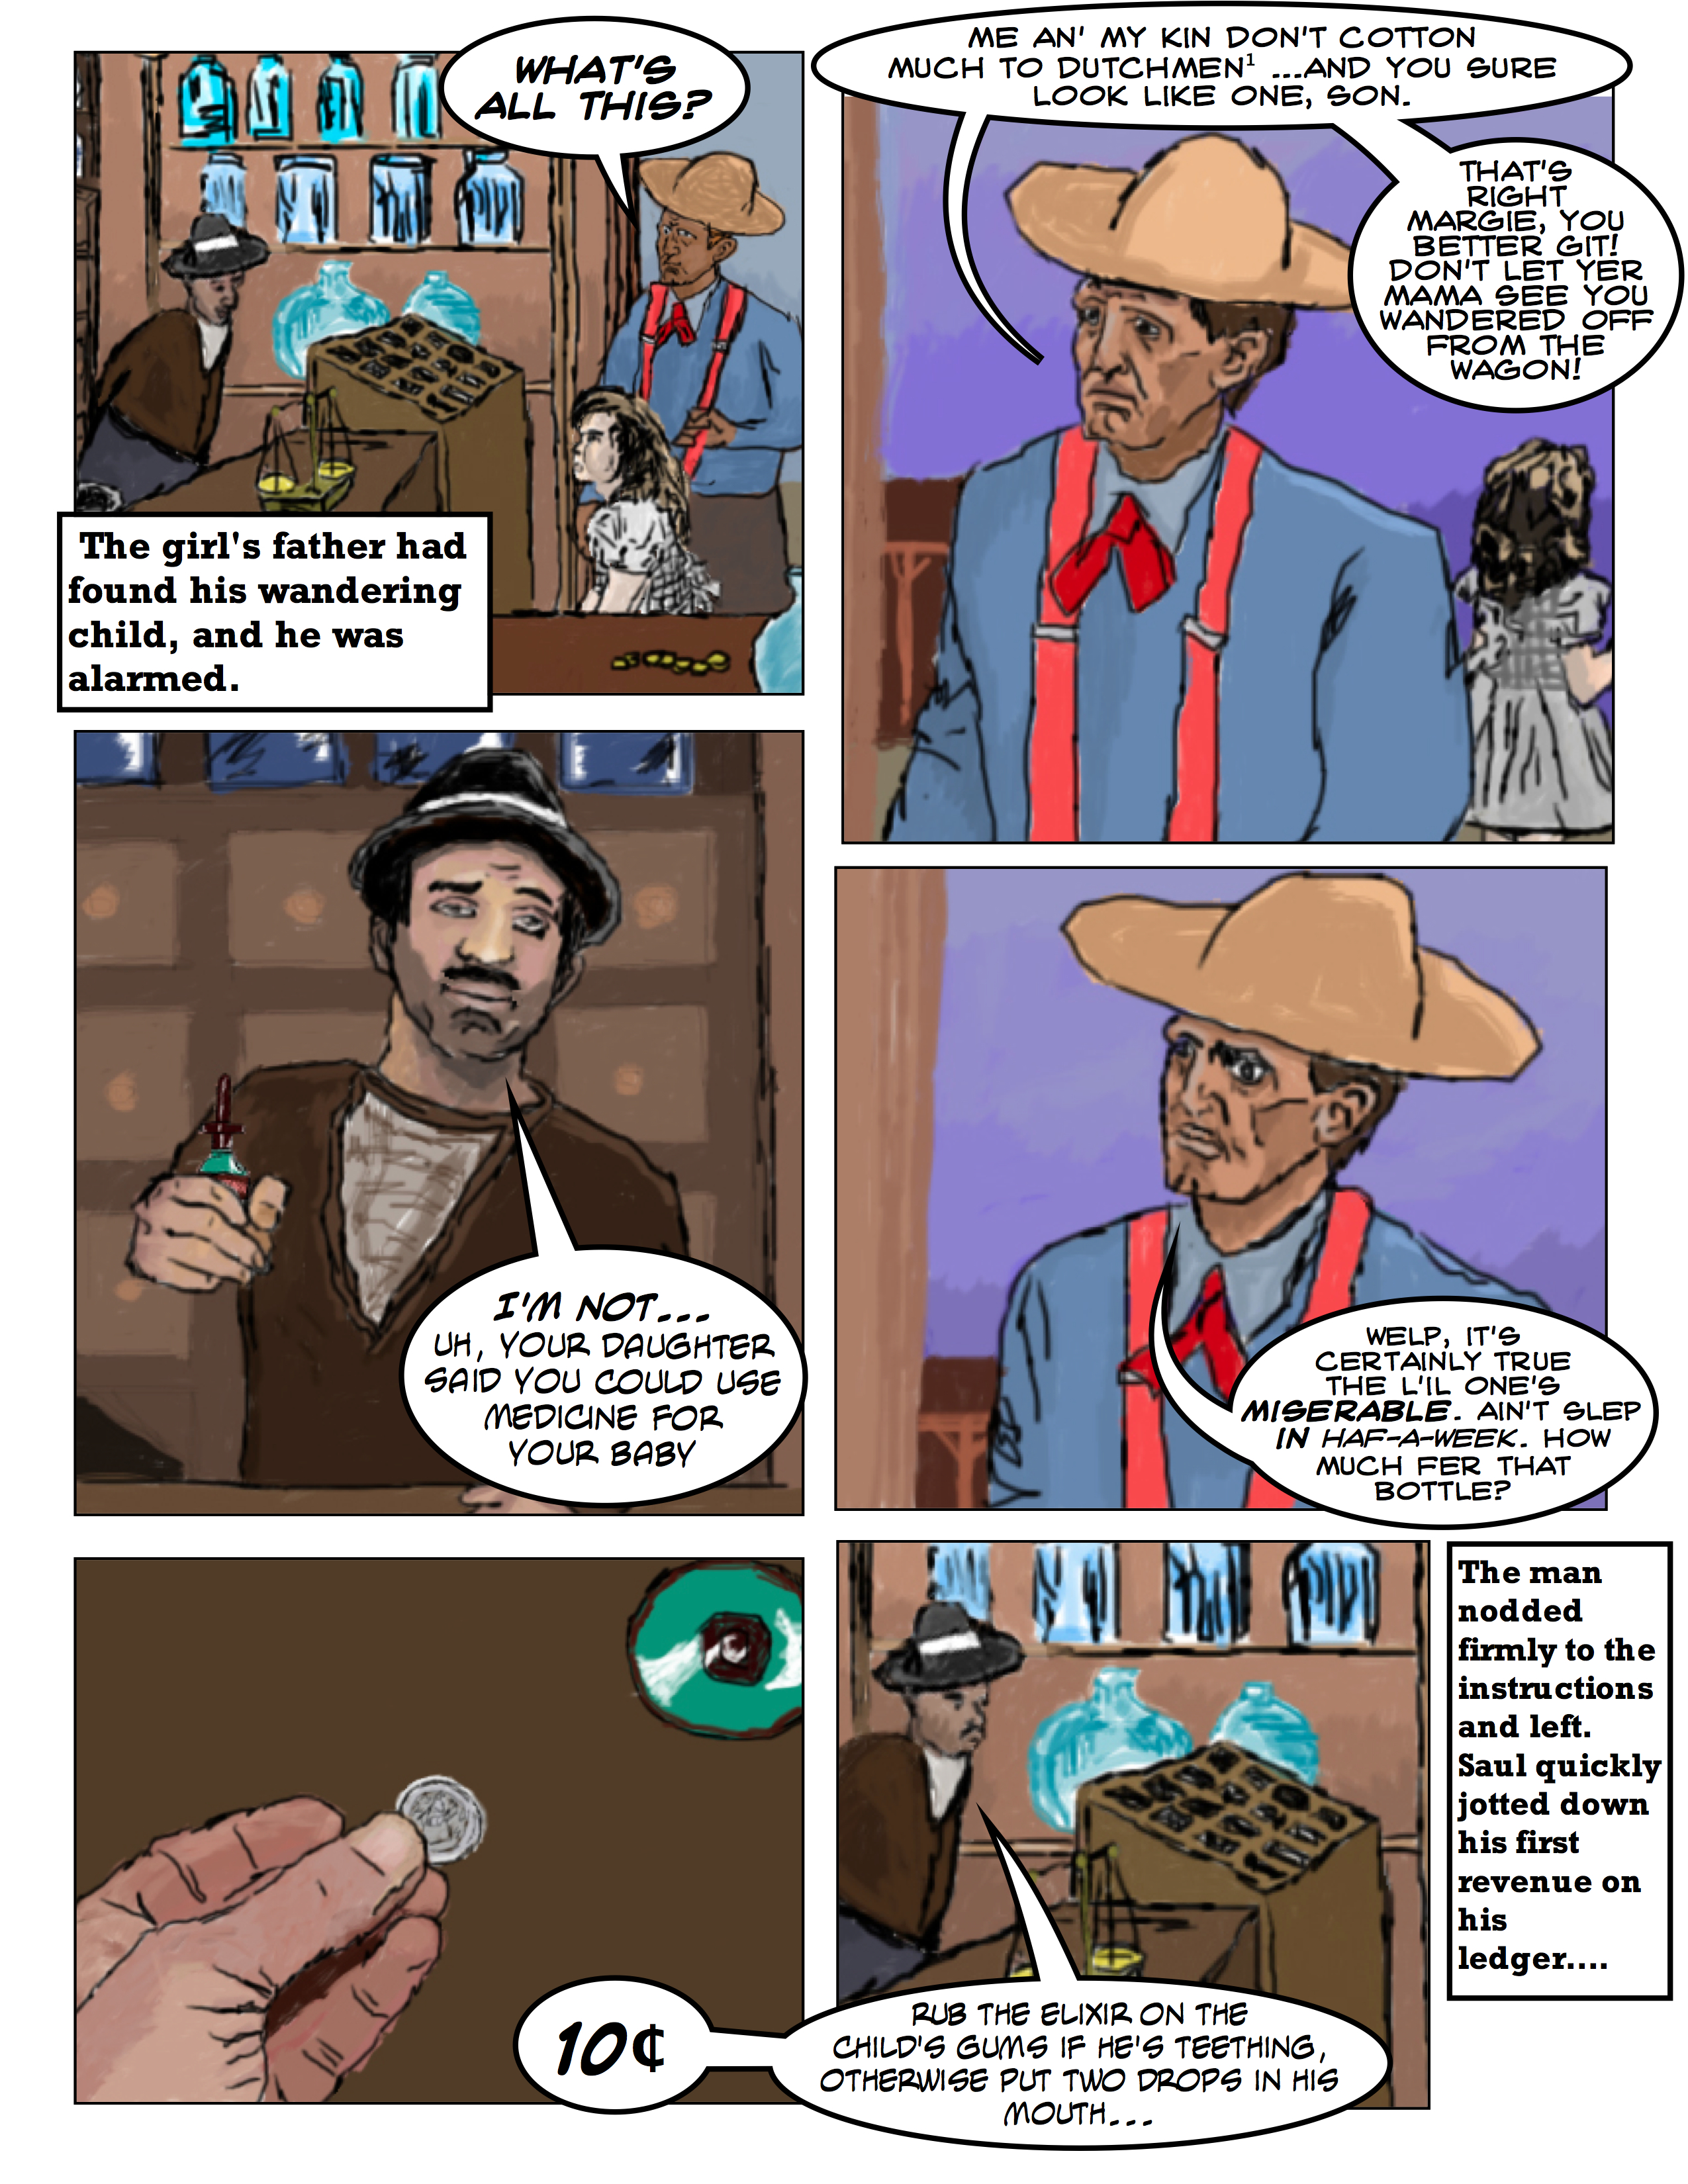 Wild West Apothecary: Saul's First Day As A Pharmacist 2